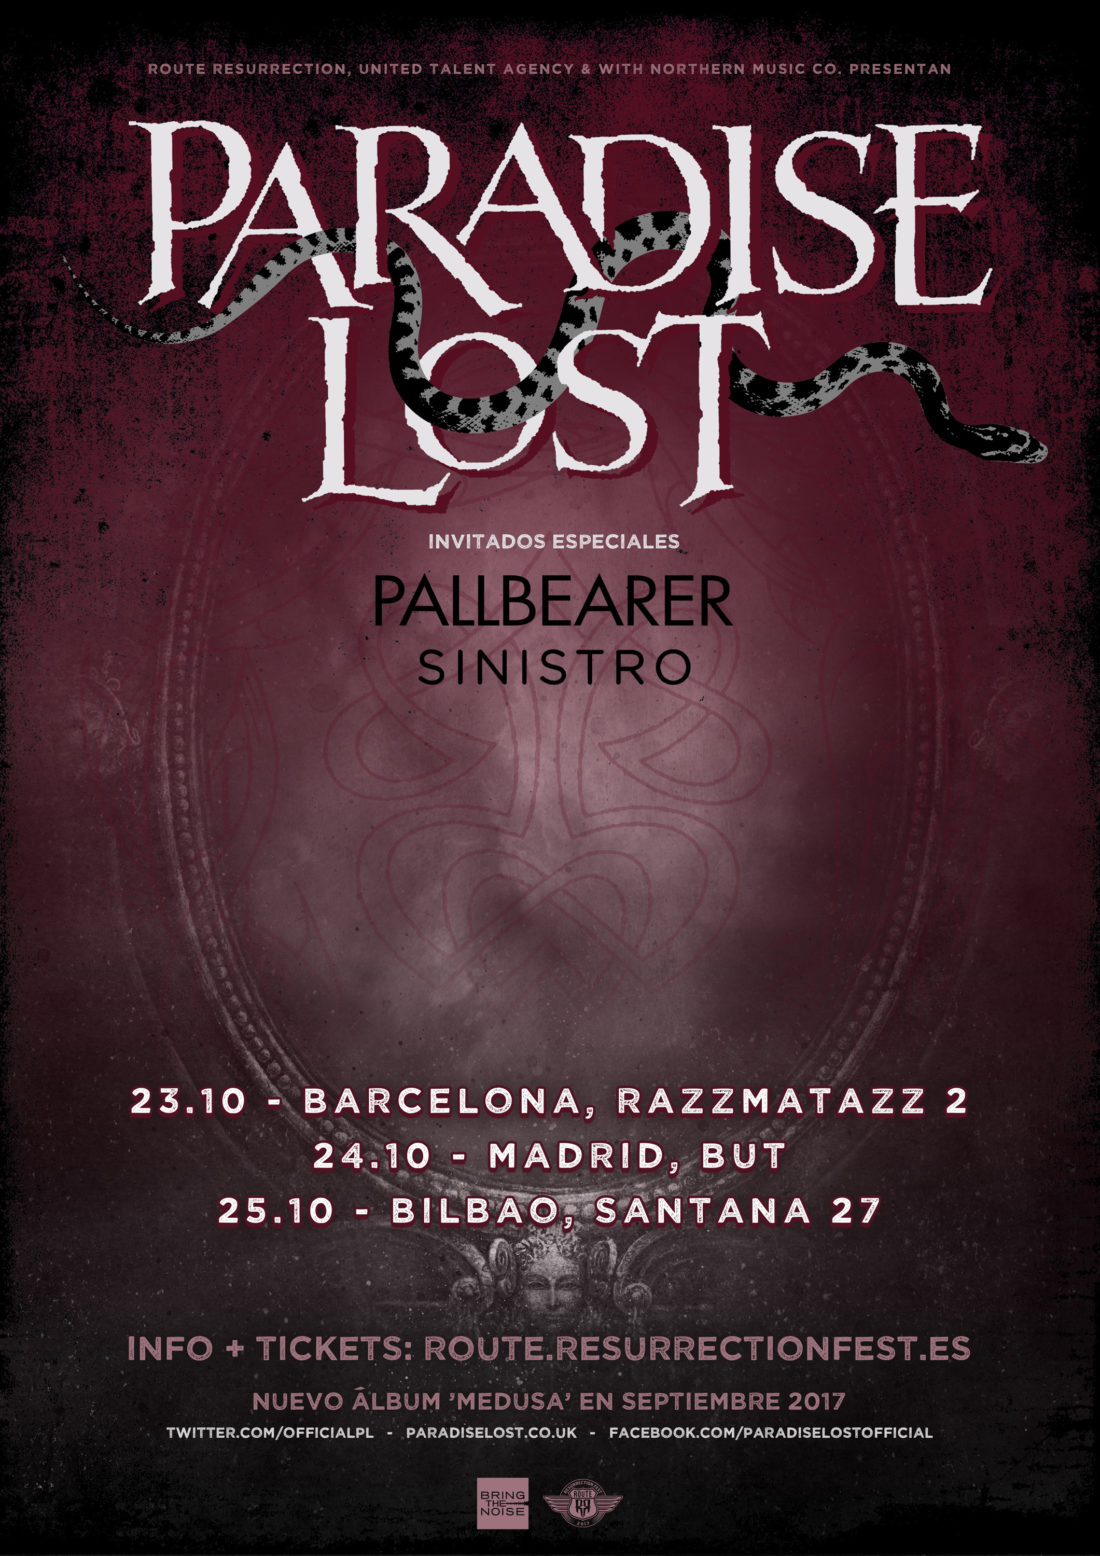 Nueva gira Route Resurrection: Paradise Lost